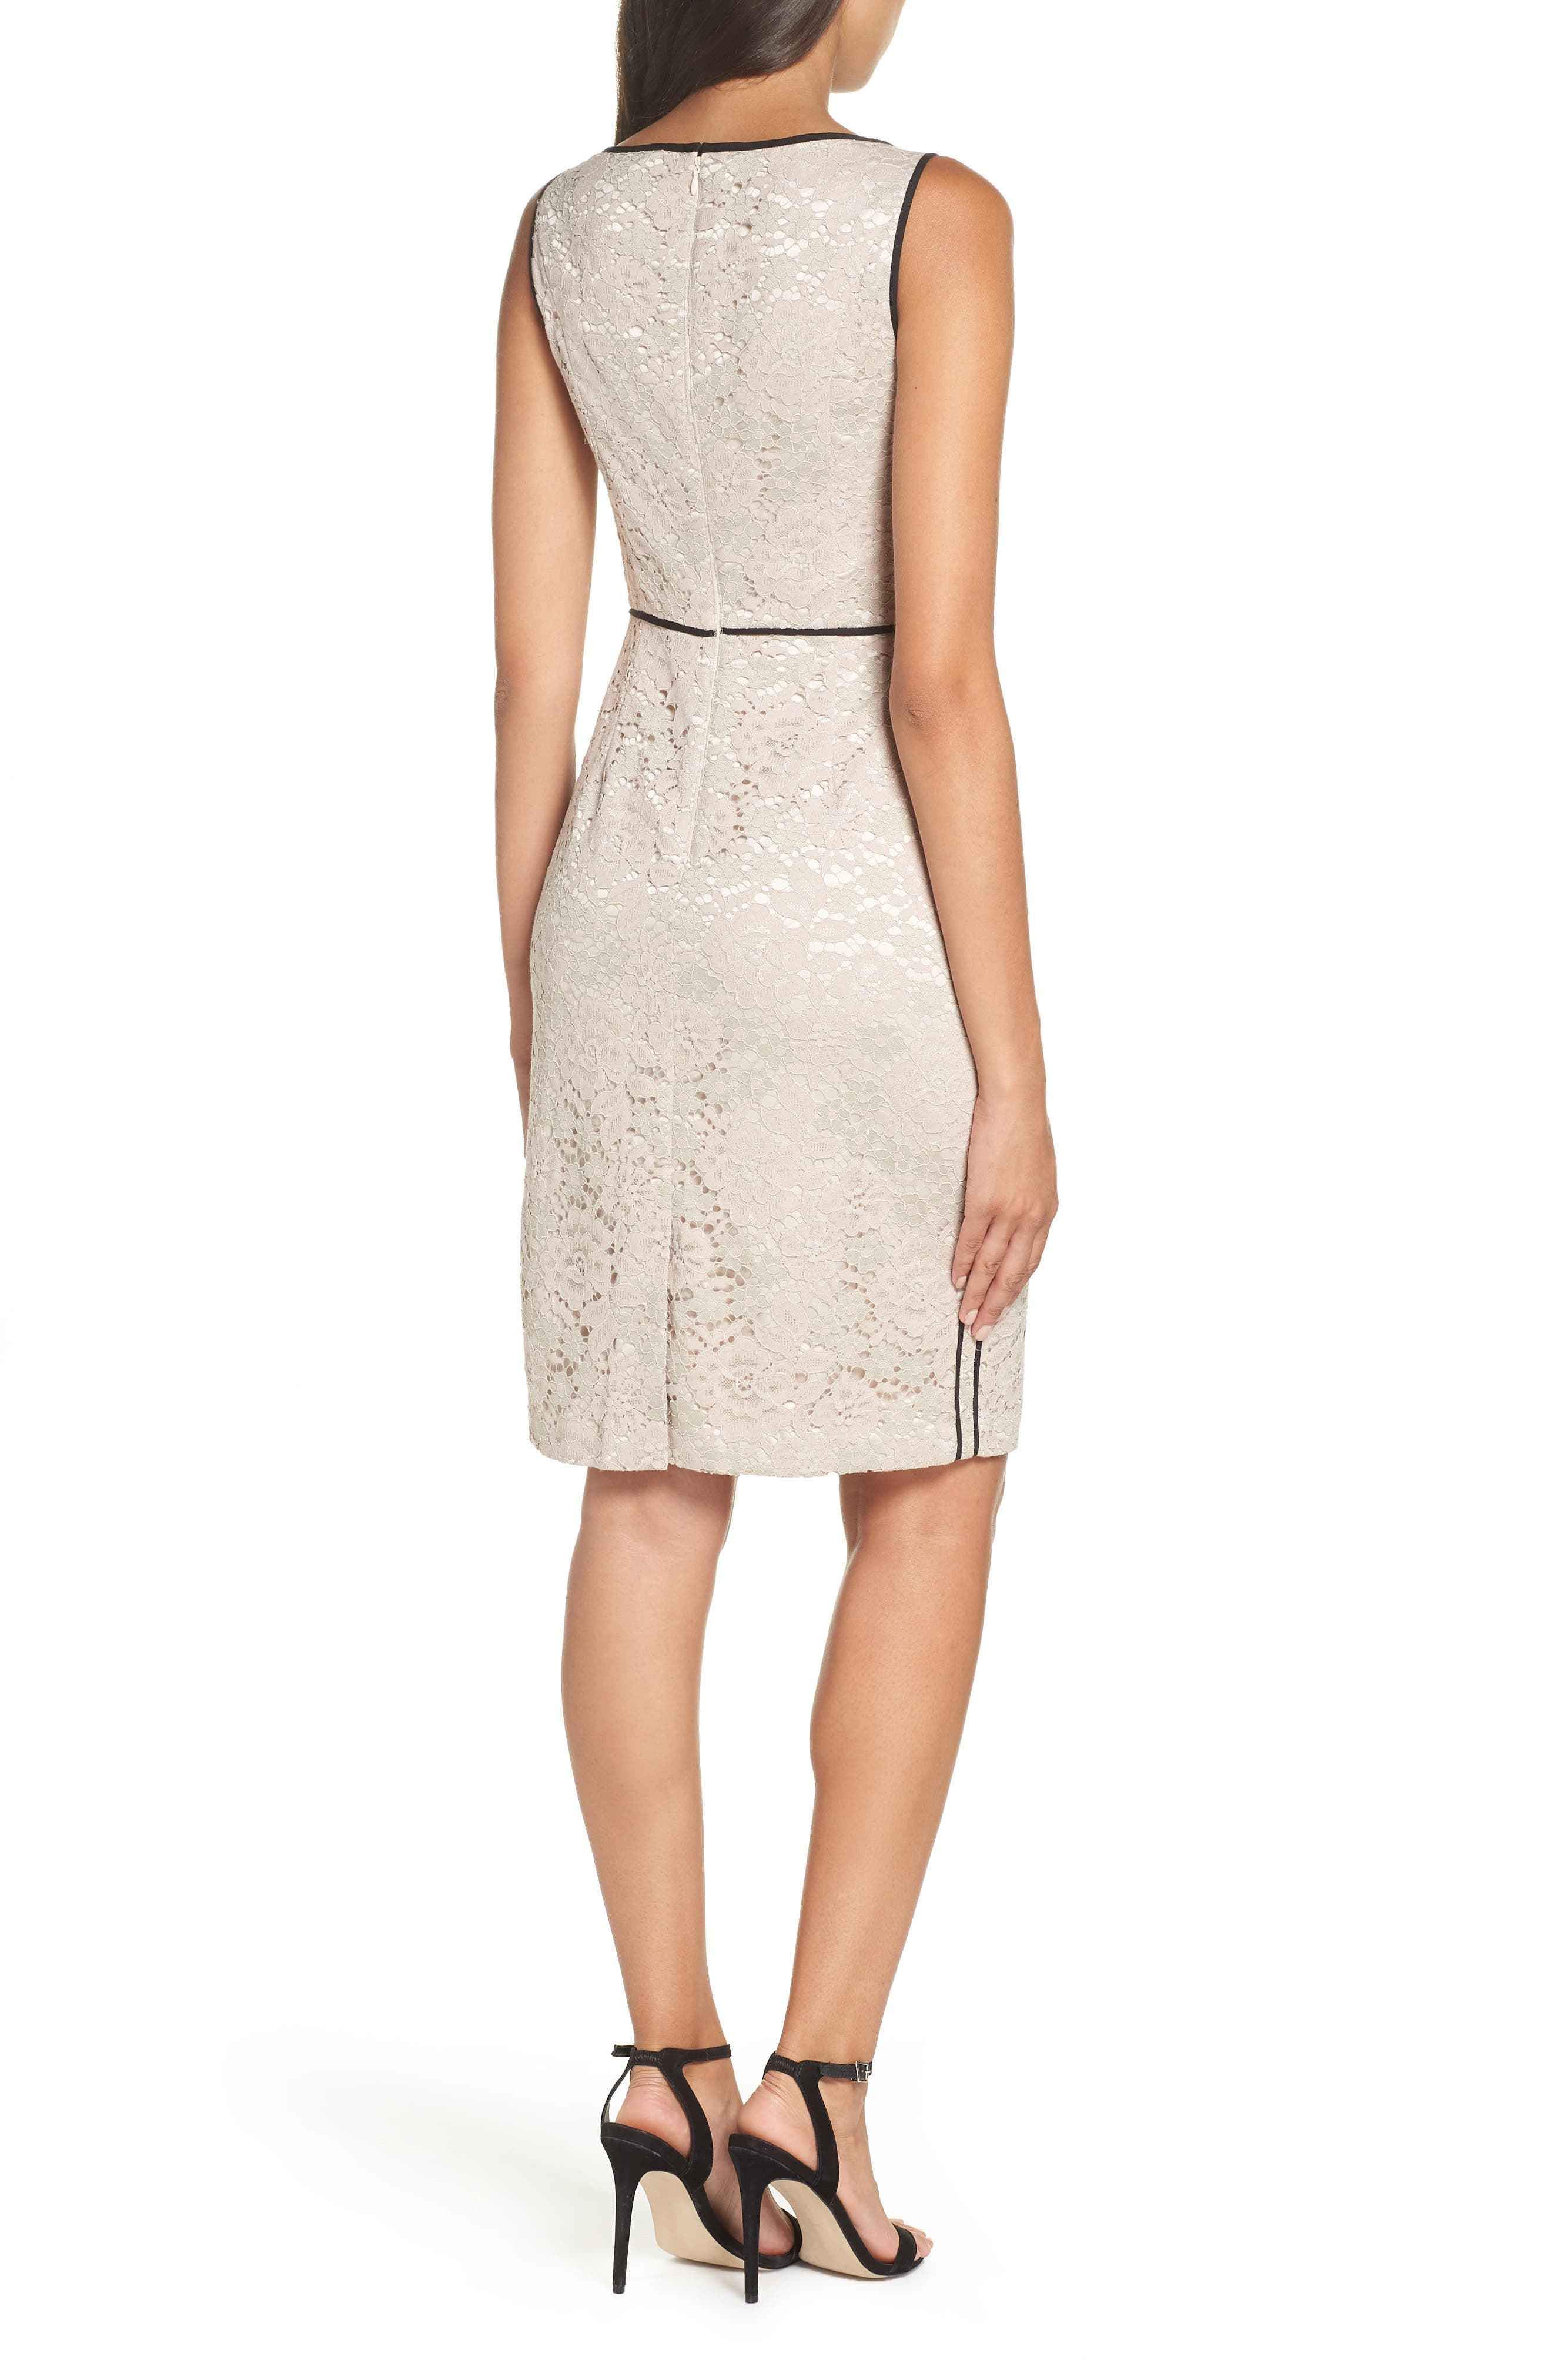 Piped Lace Sheath Dress,                             Alternate thumbnail 2, color,                             256